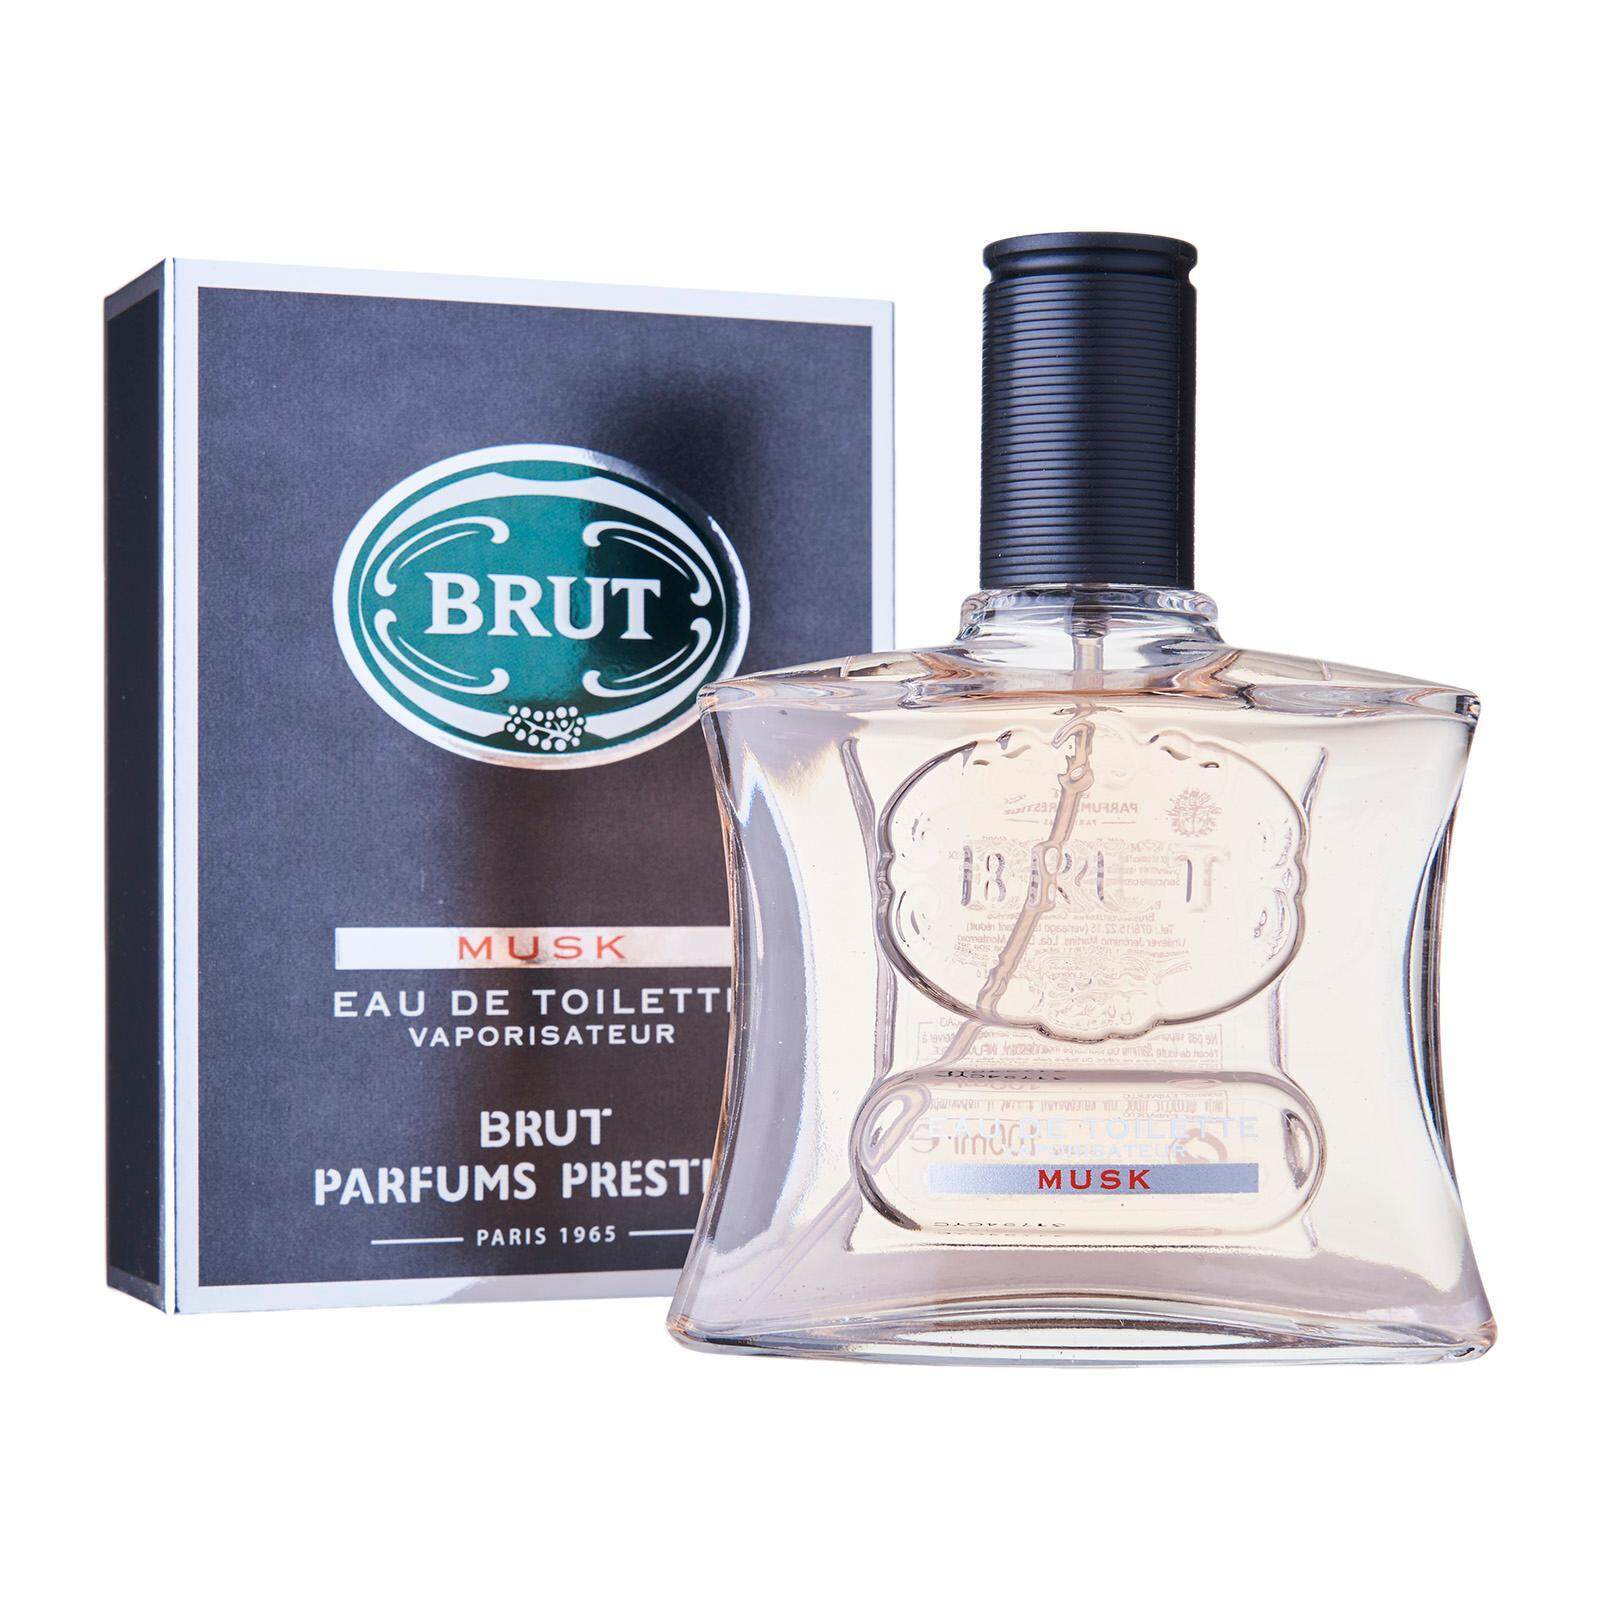 Brut Health Beauty Fragrances Price In Malaysia Best Brut